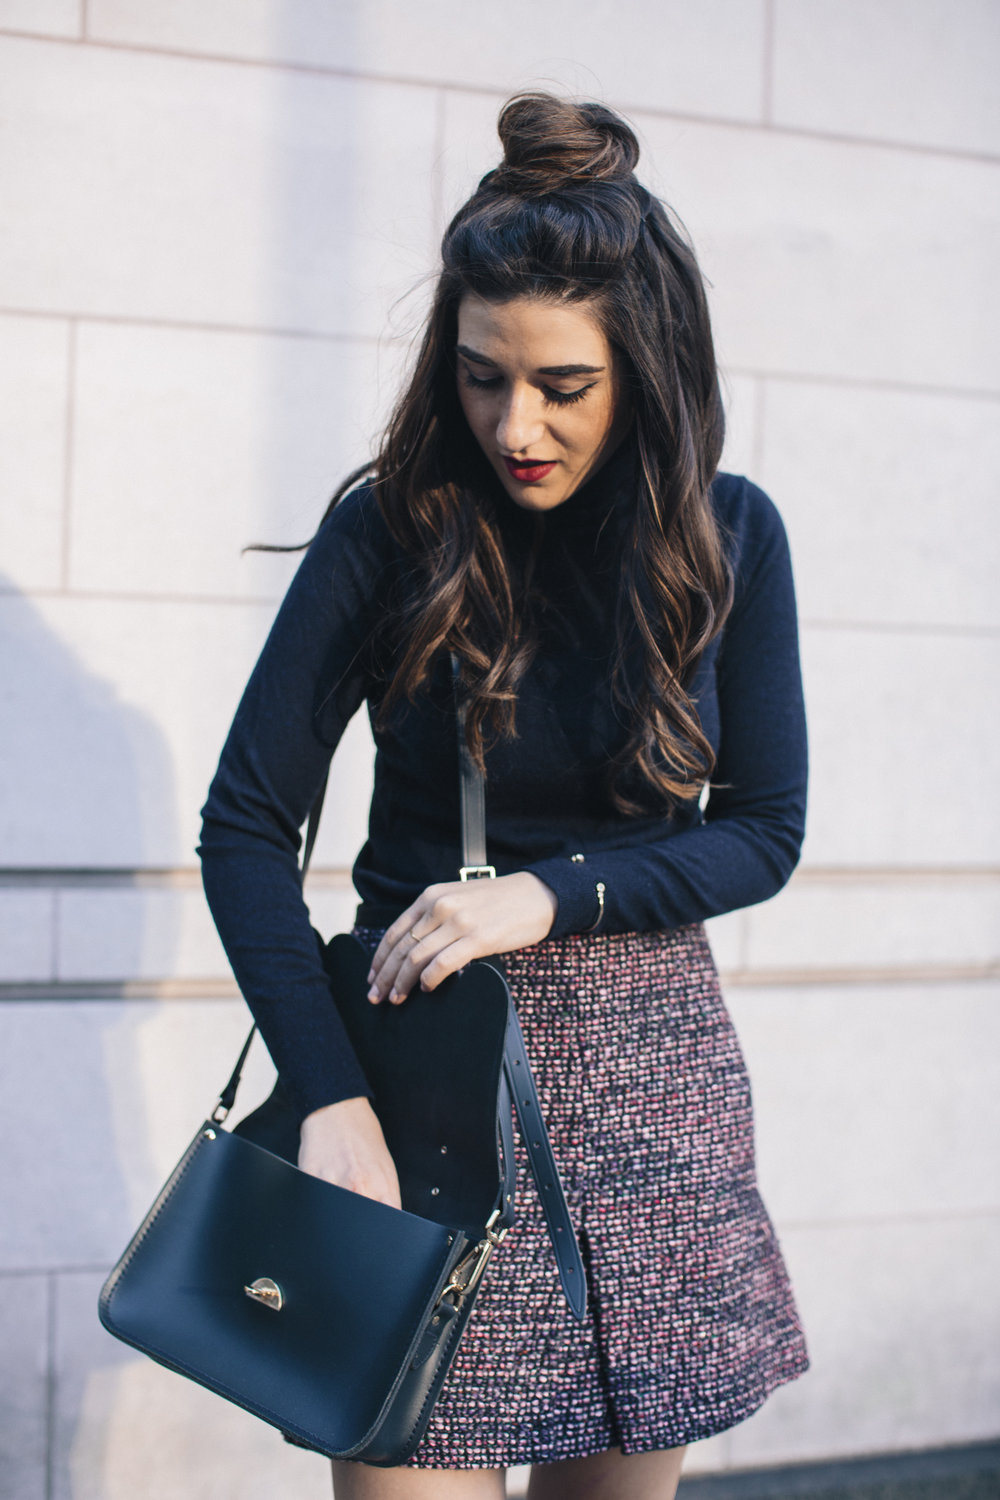 Navy Turtleneck Tweed Skirt My 10 Best Blogging Moments Louboutins & Love Fashion Blog Esther Santer NYC Street Style Blogger Outfit OOTD Trendy Cambridge Satchel Bag Topknot Hair Bun Girl Women Beauty Winter Shoes Ivanka Trump Tan Fringe Booties Shop.jpg